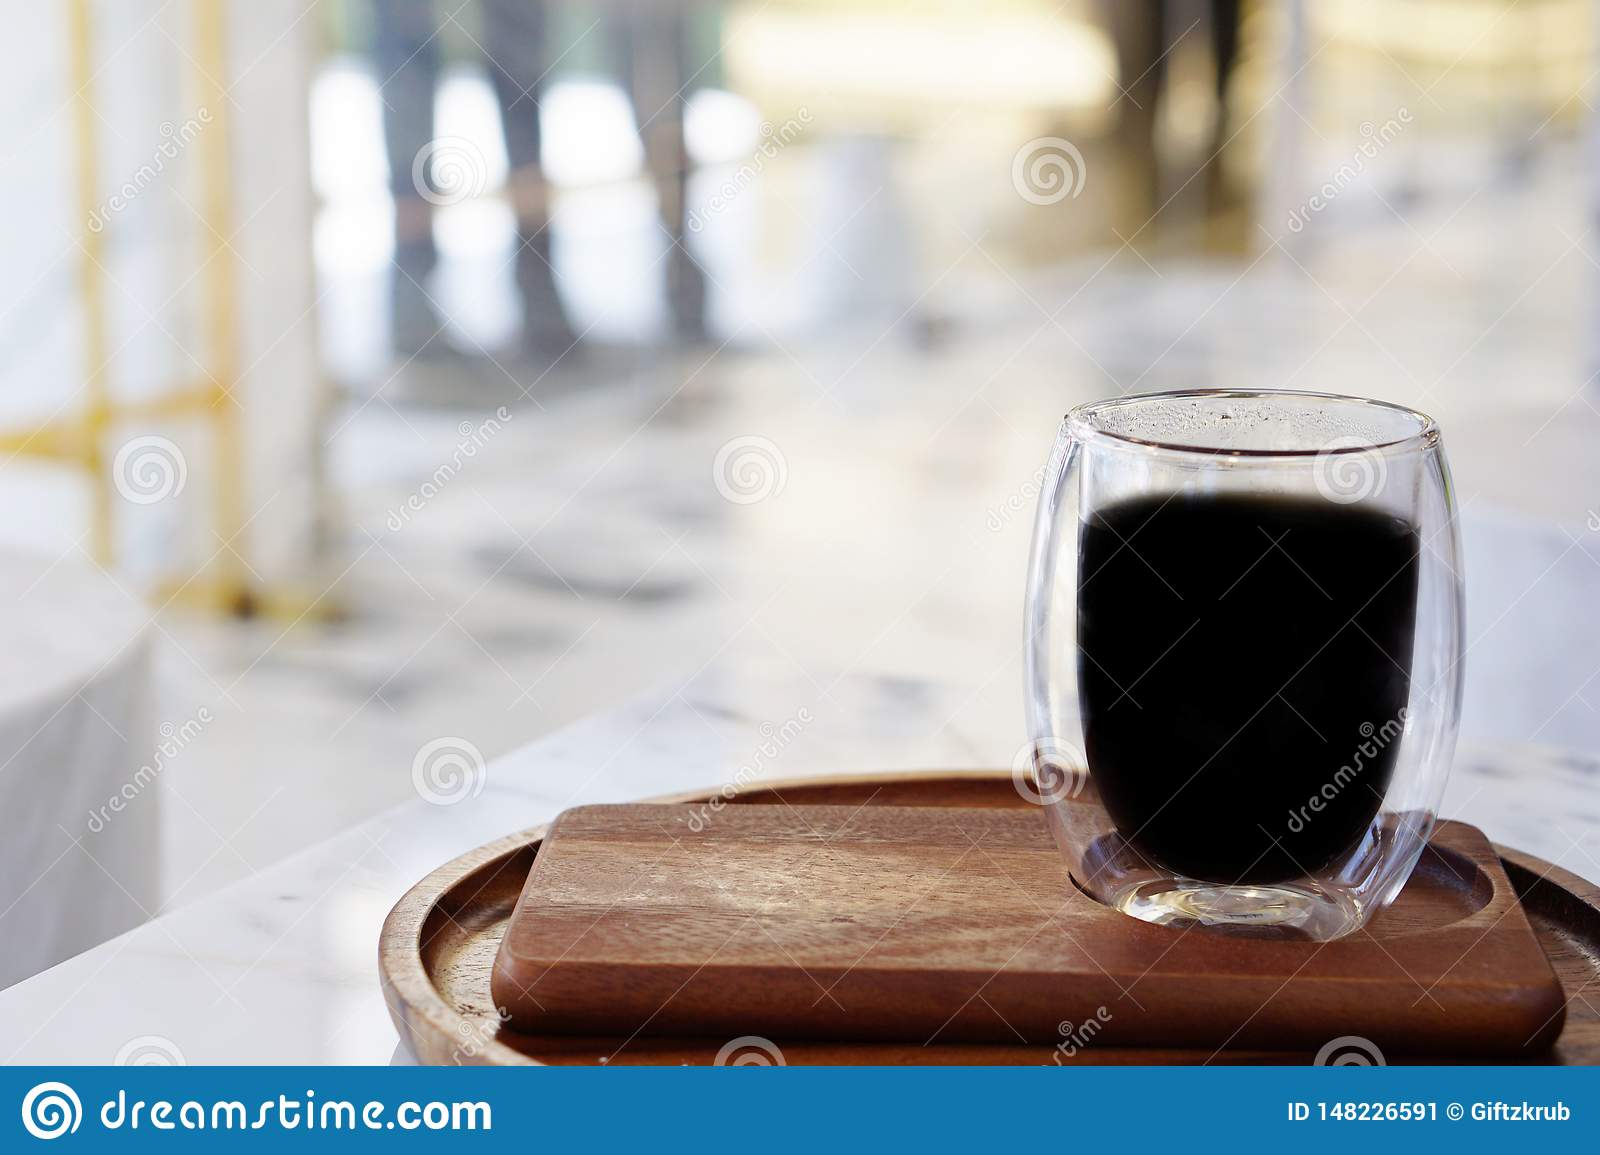 The atmosphere in the shop with a cup of coffee with a blurred background and light.